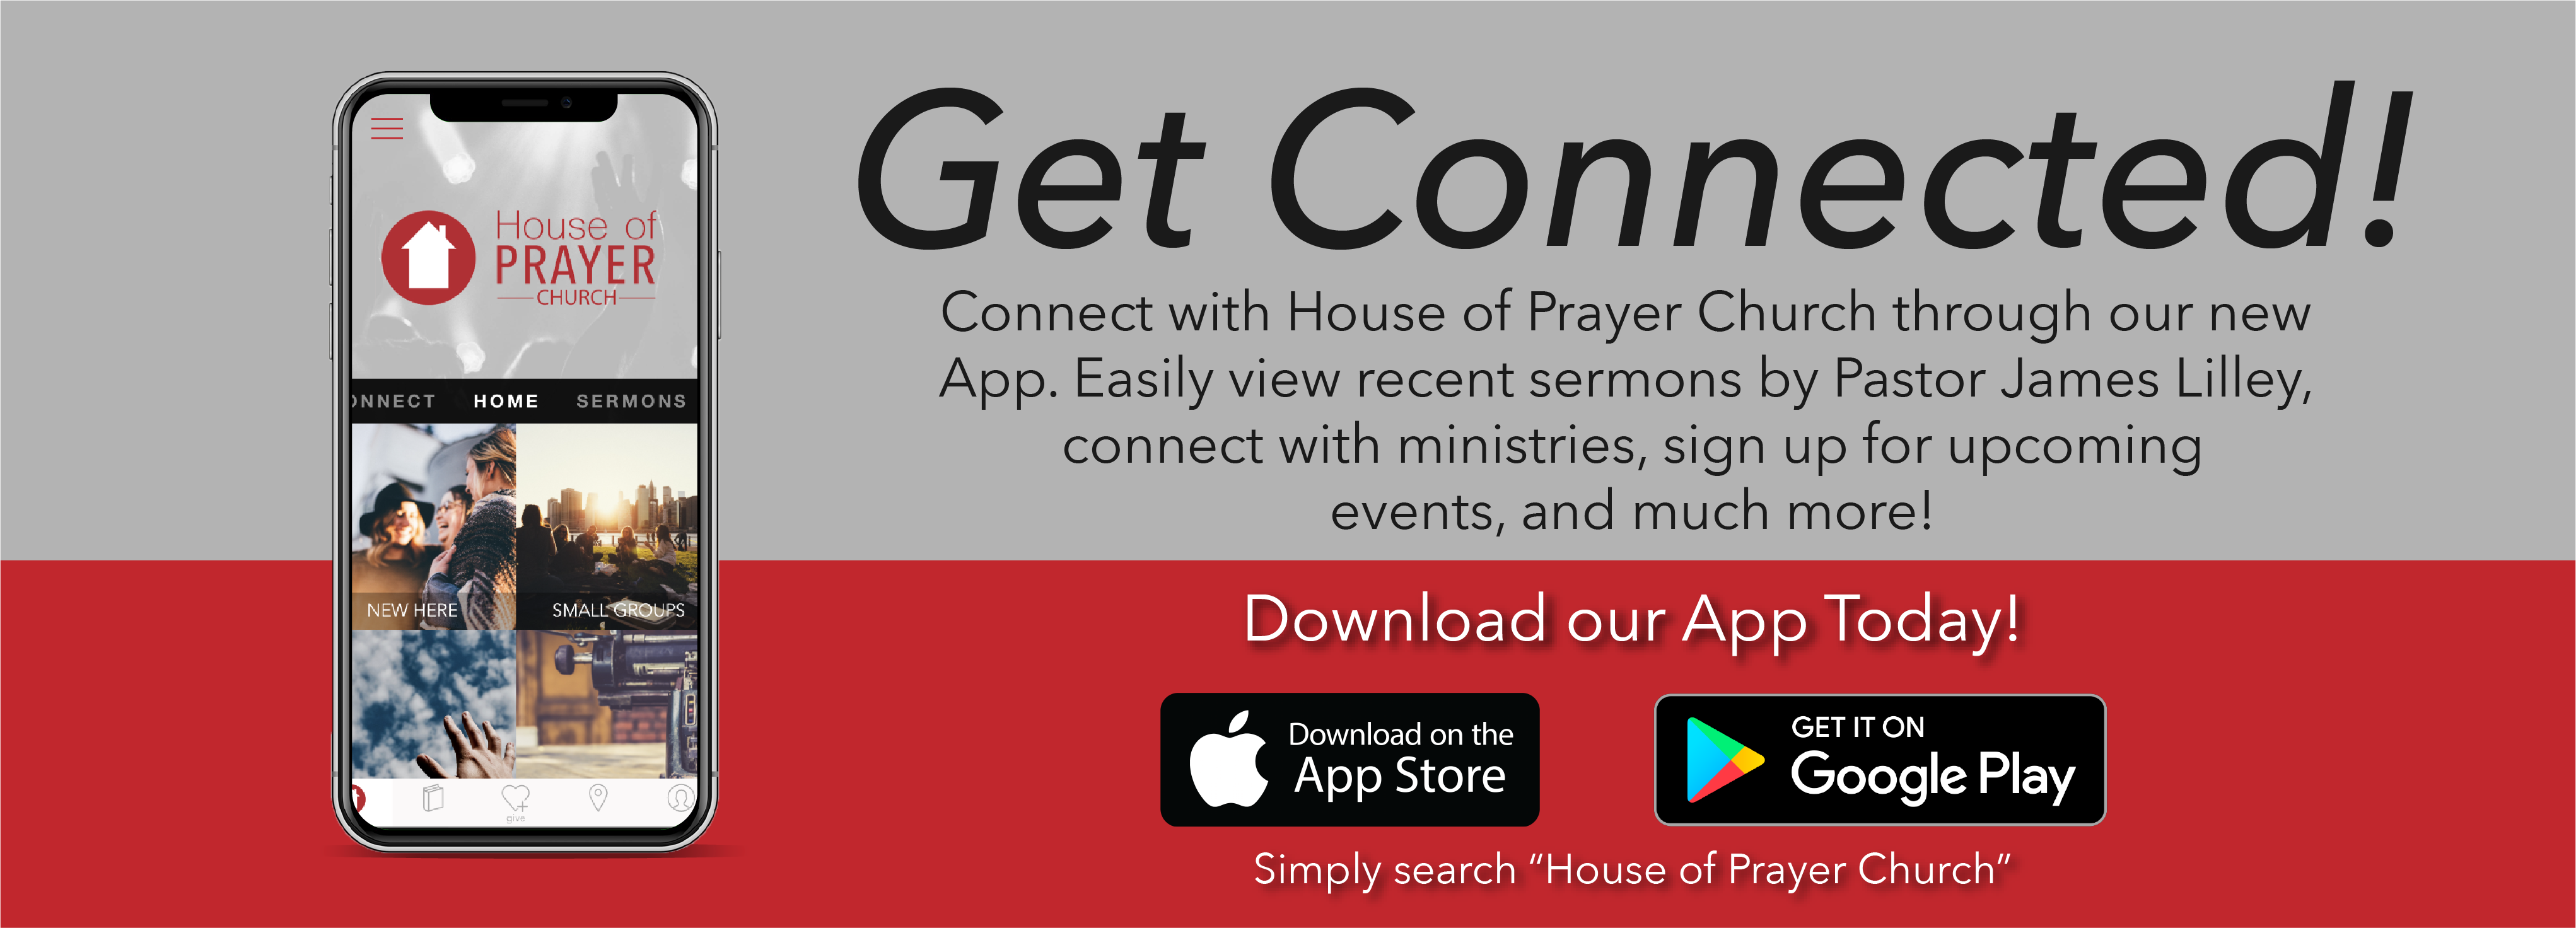 Mobile App - House of Prayer Church - Waterbury Connecticut